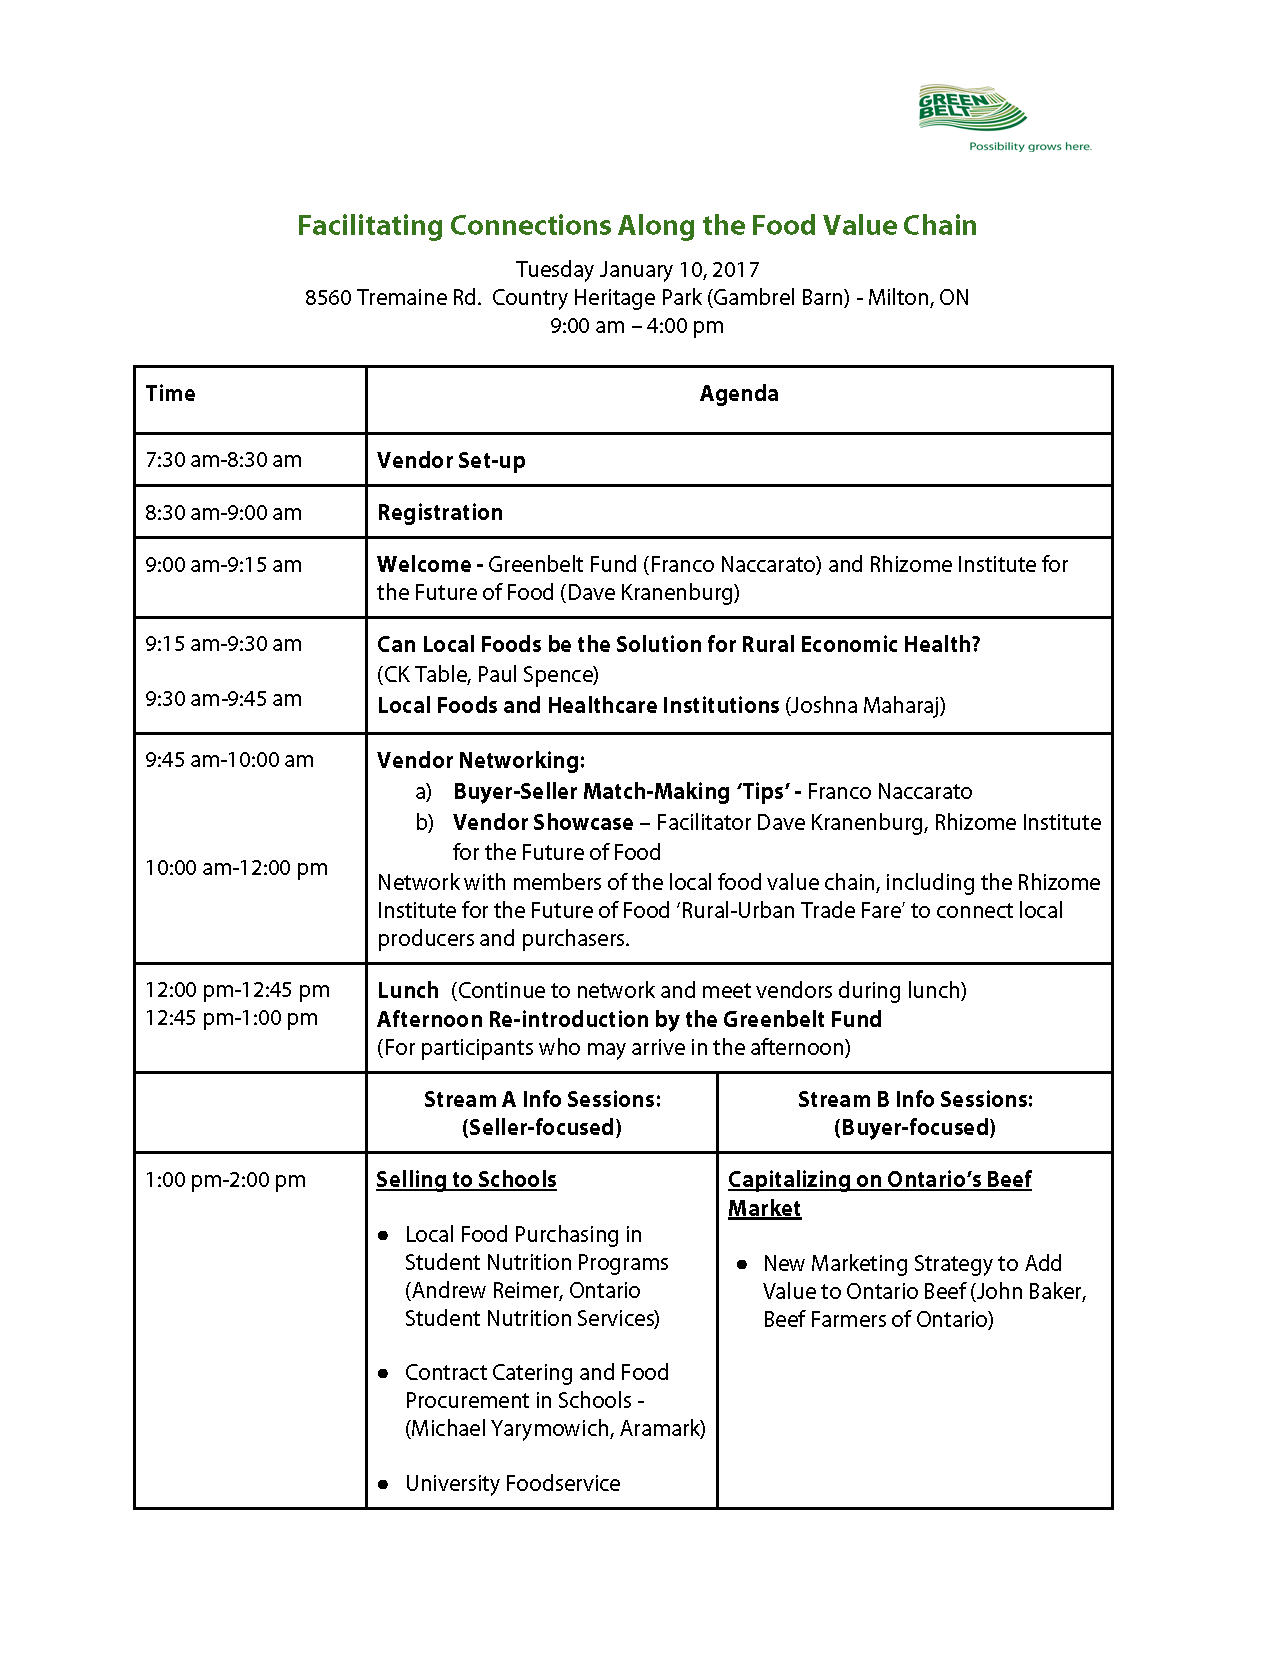 FinalAgenda-January102017Workshop-FacilitatingConnectionsAlongtheFoodValueChain_Page_1.png